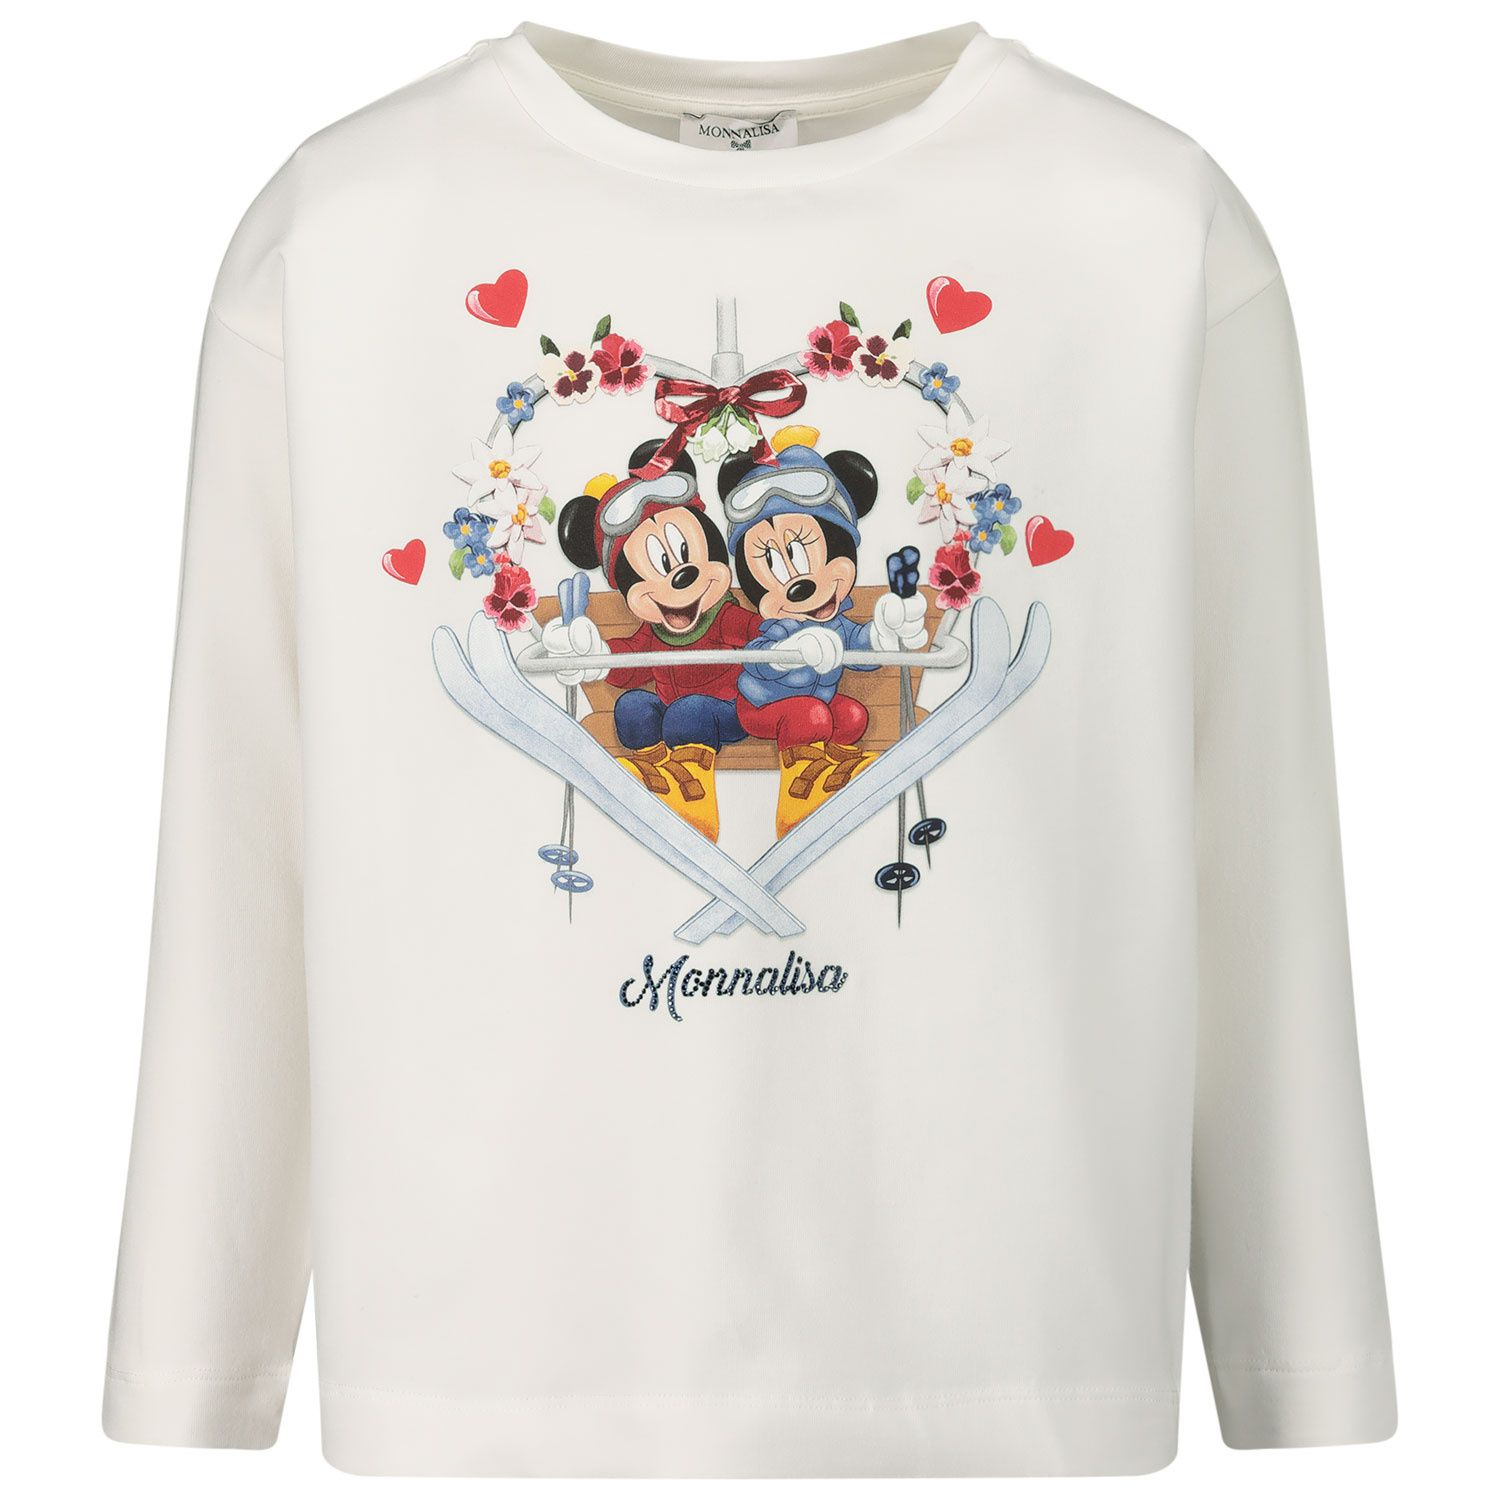 Picture of MonnaLisa 116623P4 kids t-shirt off white